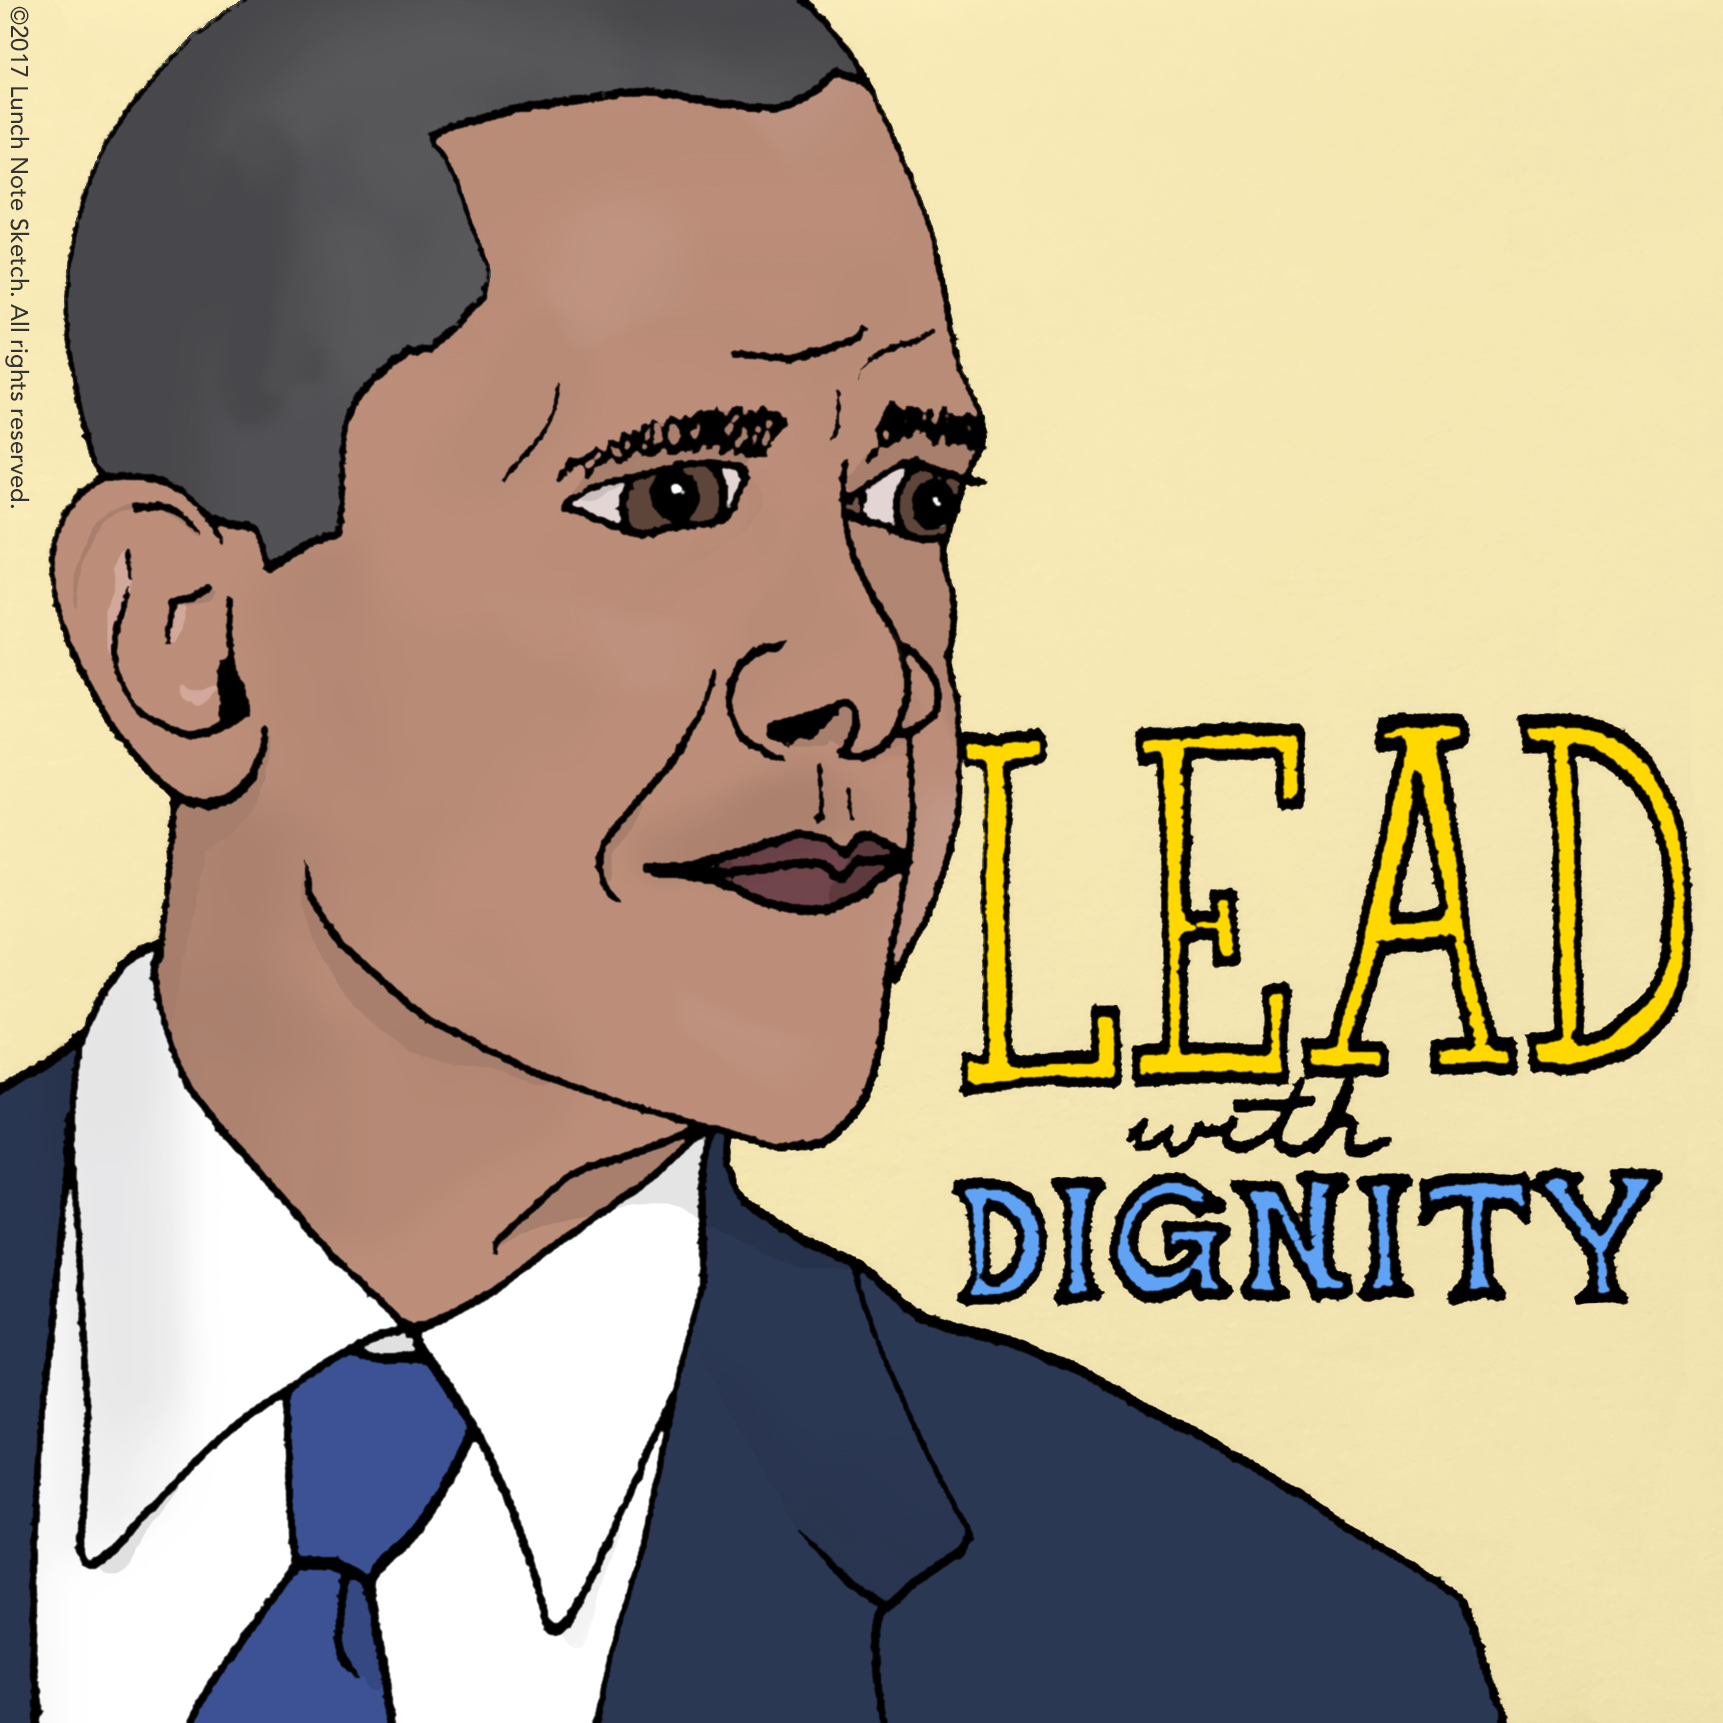 Lead with Dignity  meant to inspire civility and respect.